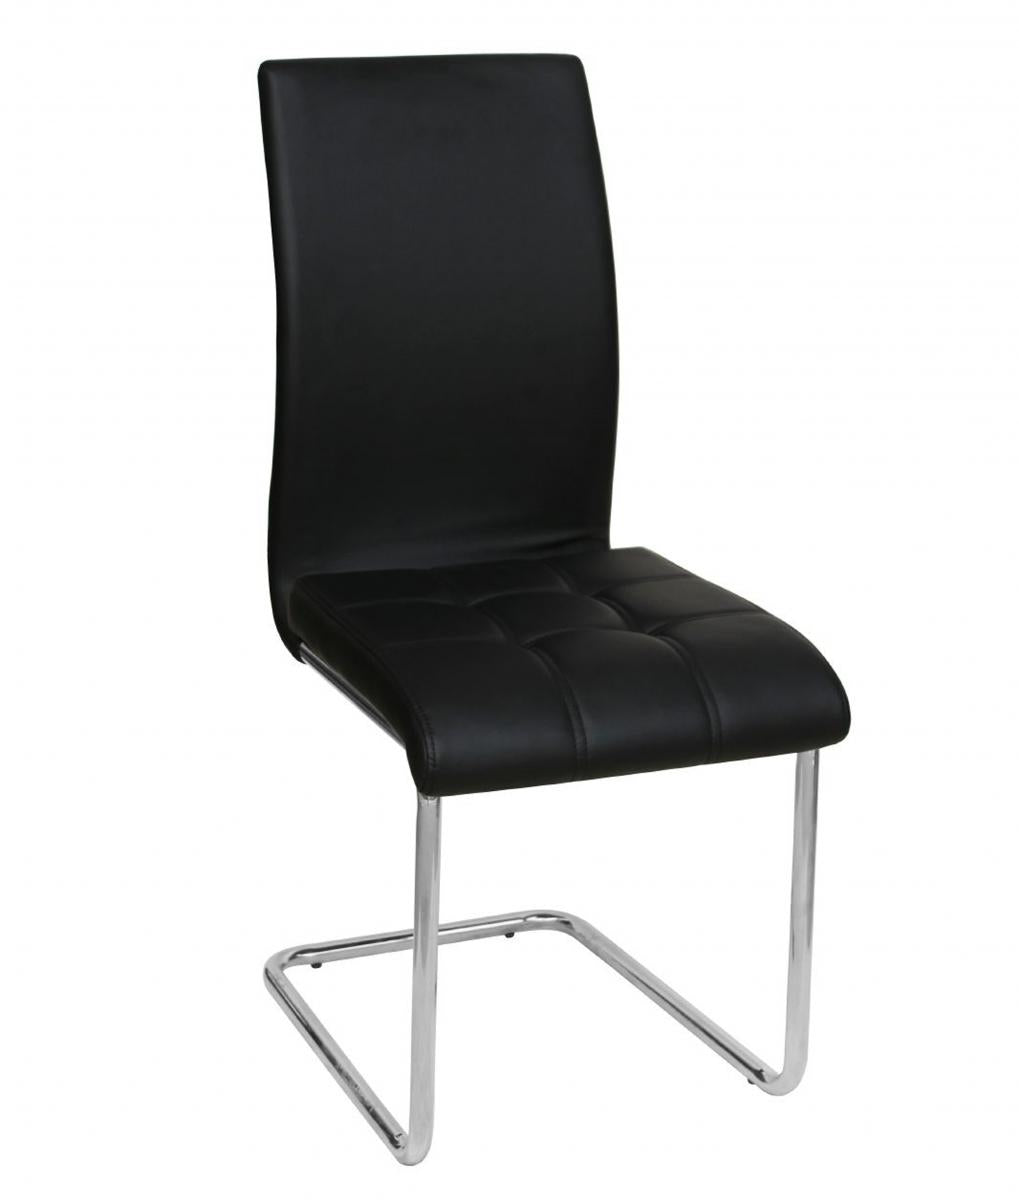 Samurai PU Chairs Chrome & Black (4s)